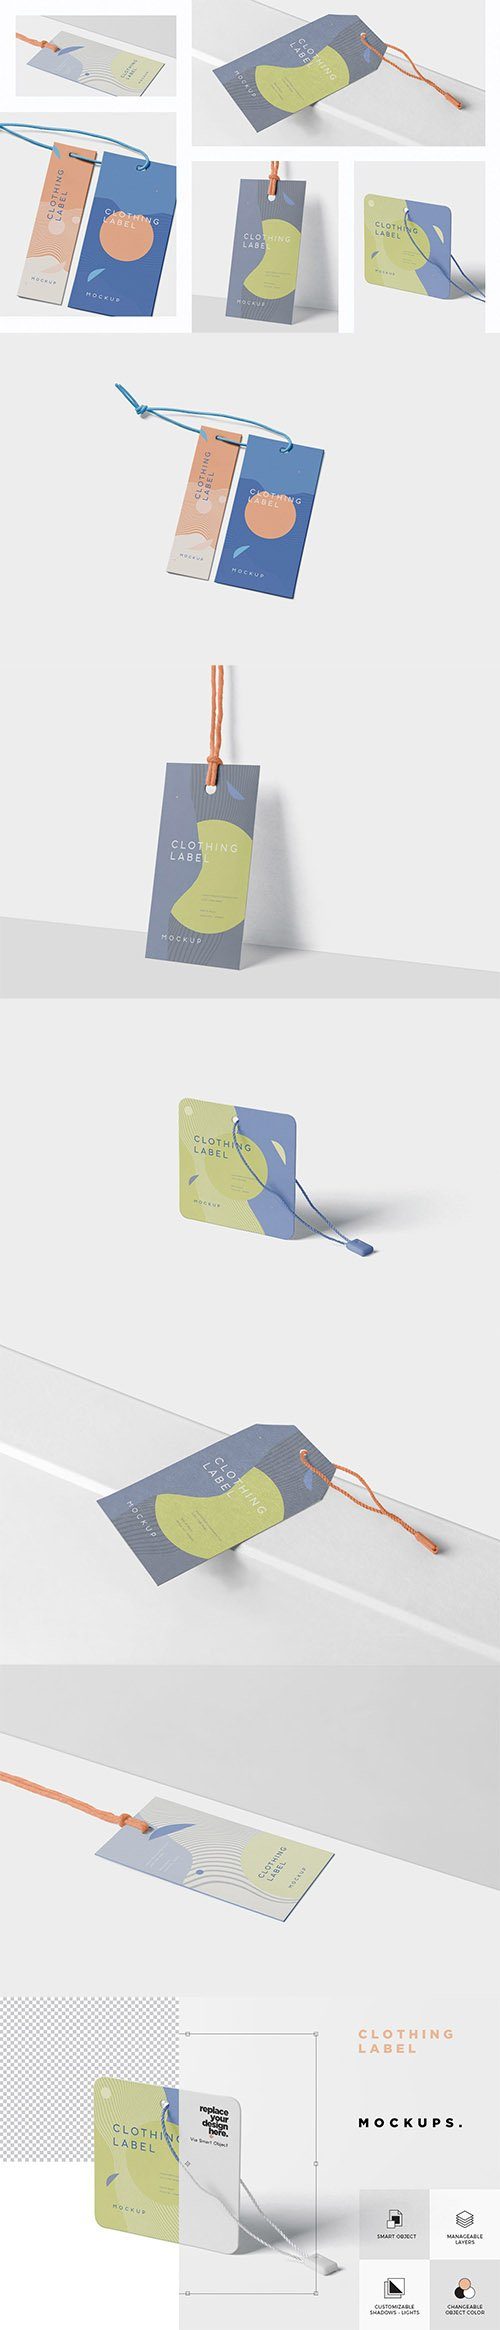 Clothing Label Mockups PSD